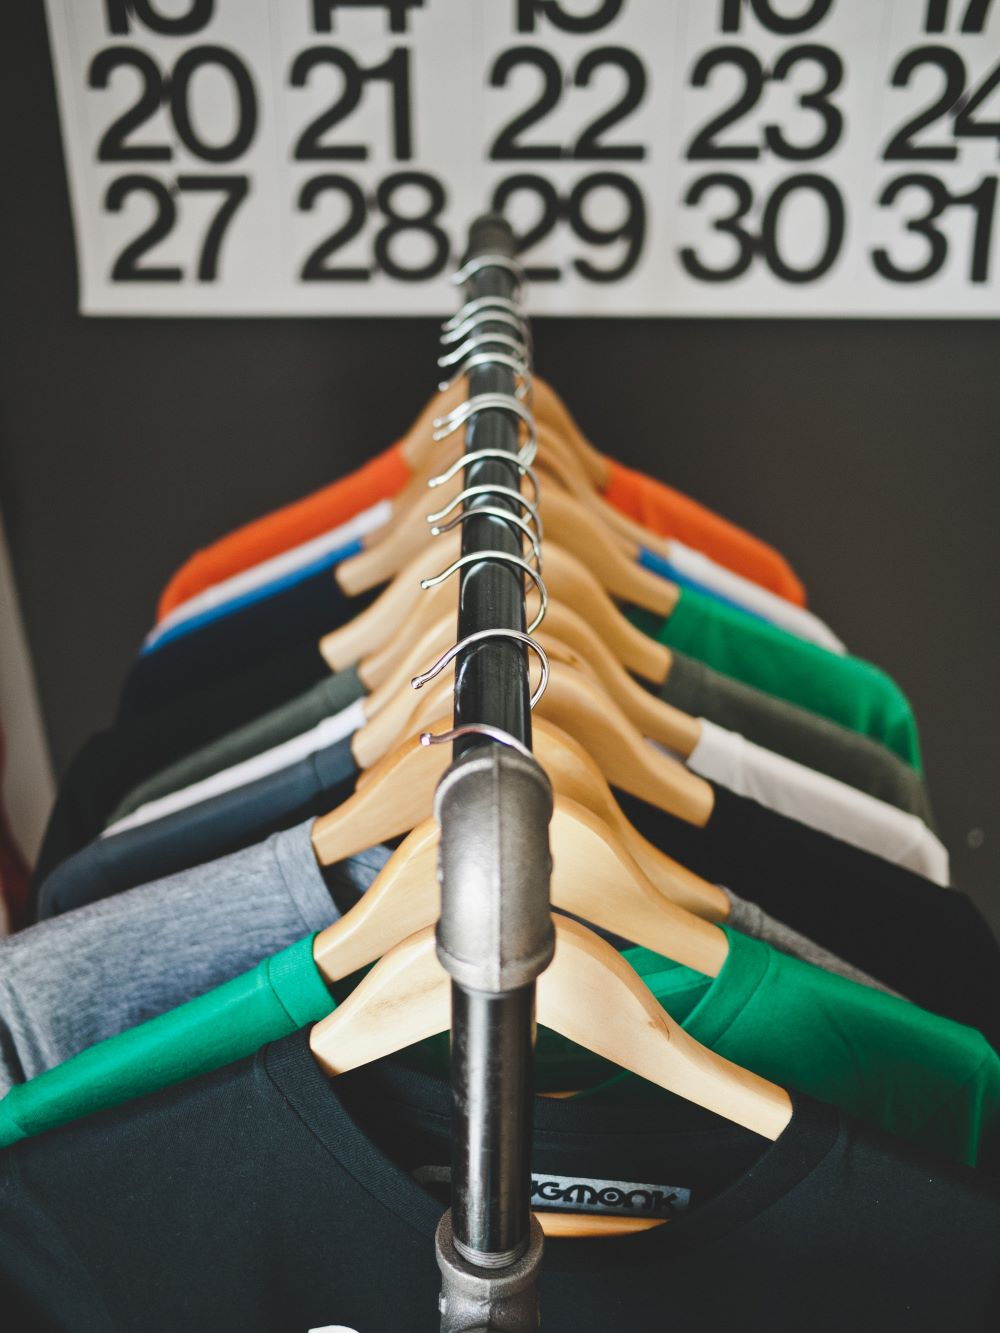 A new report by the European Commission offers guidance on measuring the environmental impact of a T-shirt, from fiber type to water usage.